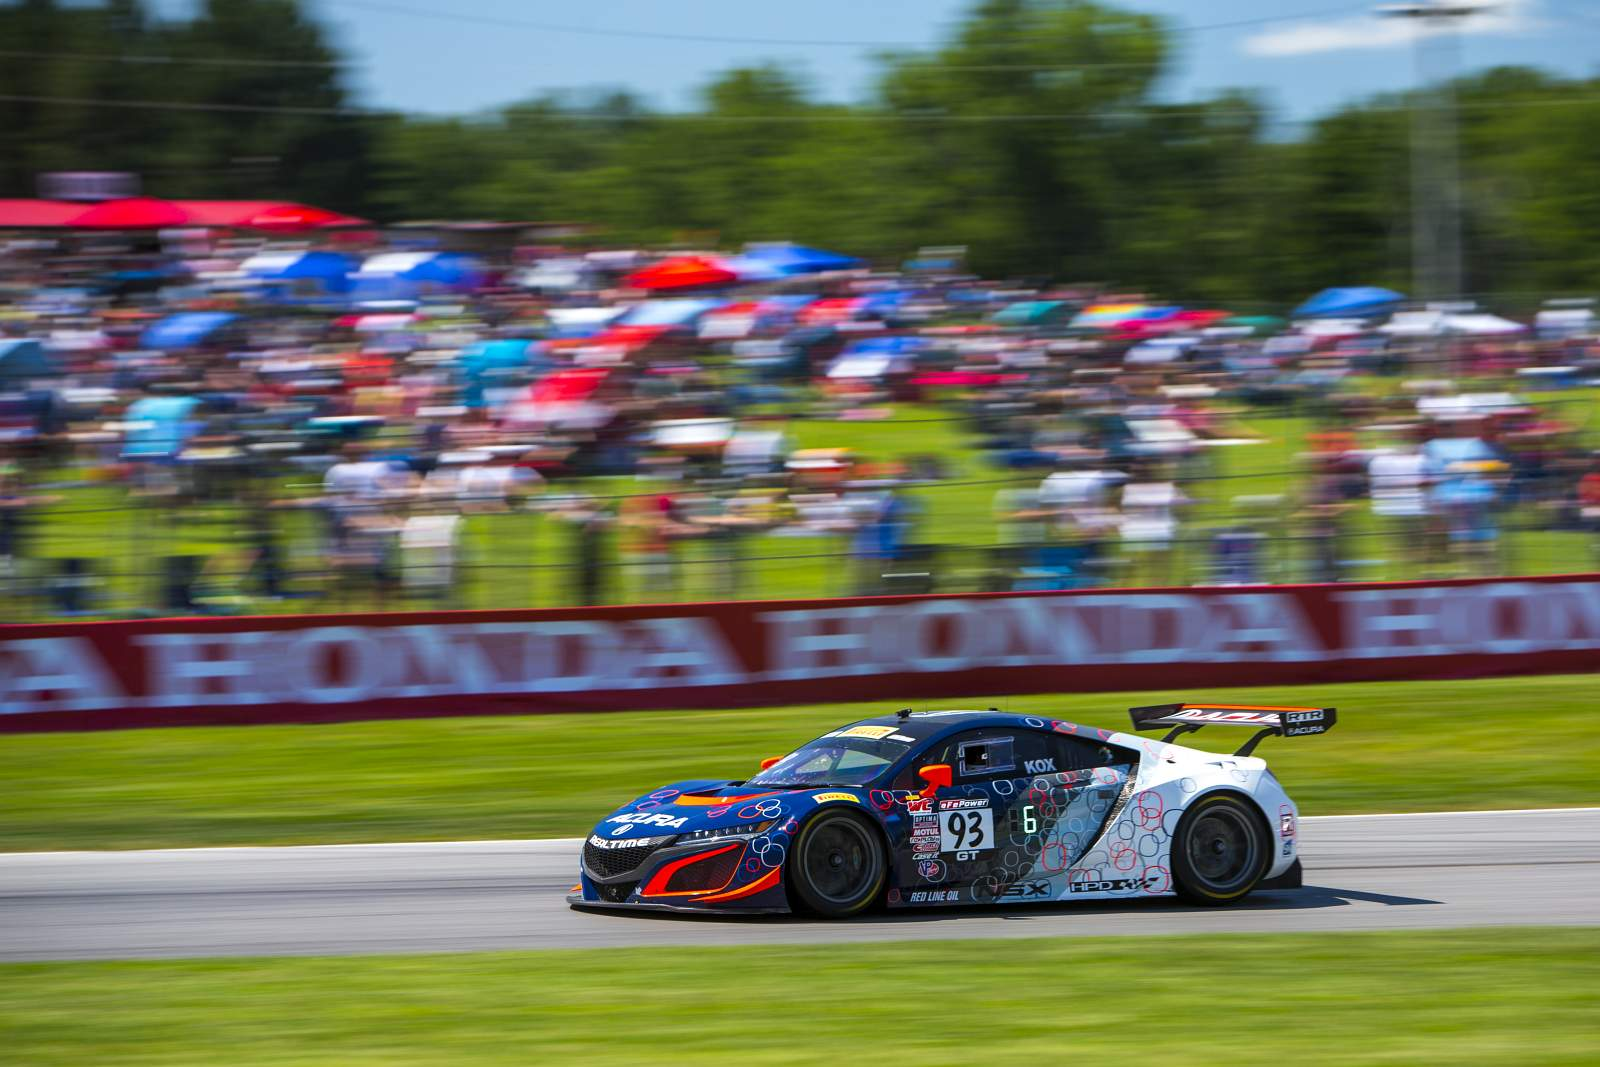 peter-kox-realtime-racing-pirelli-world-challenge-mid-ohio-124